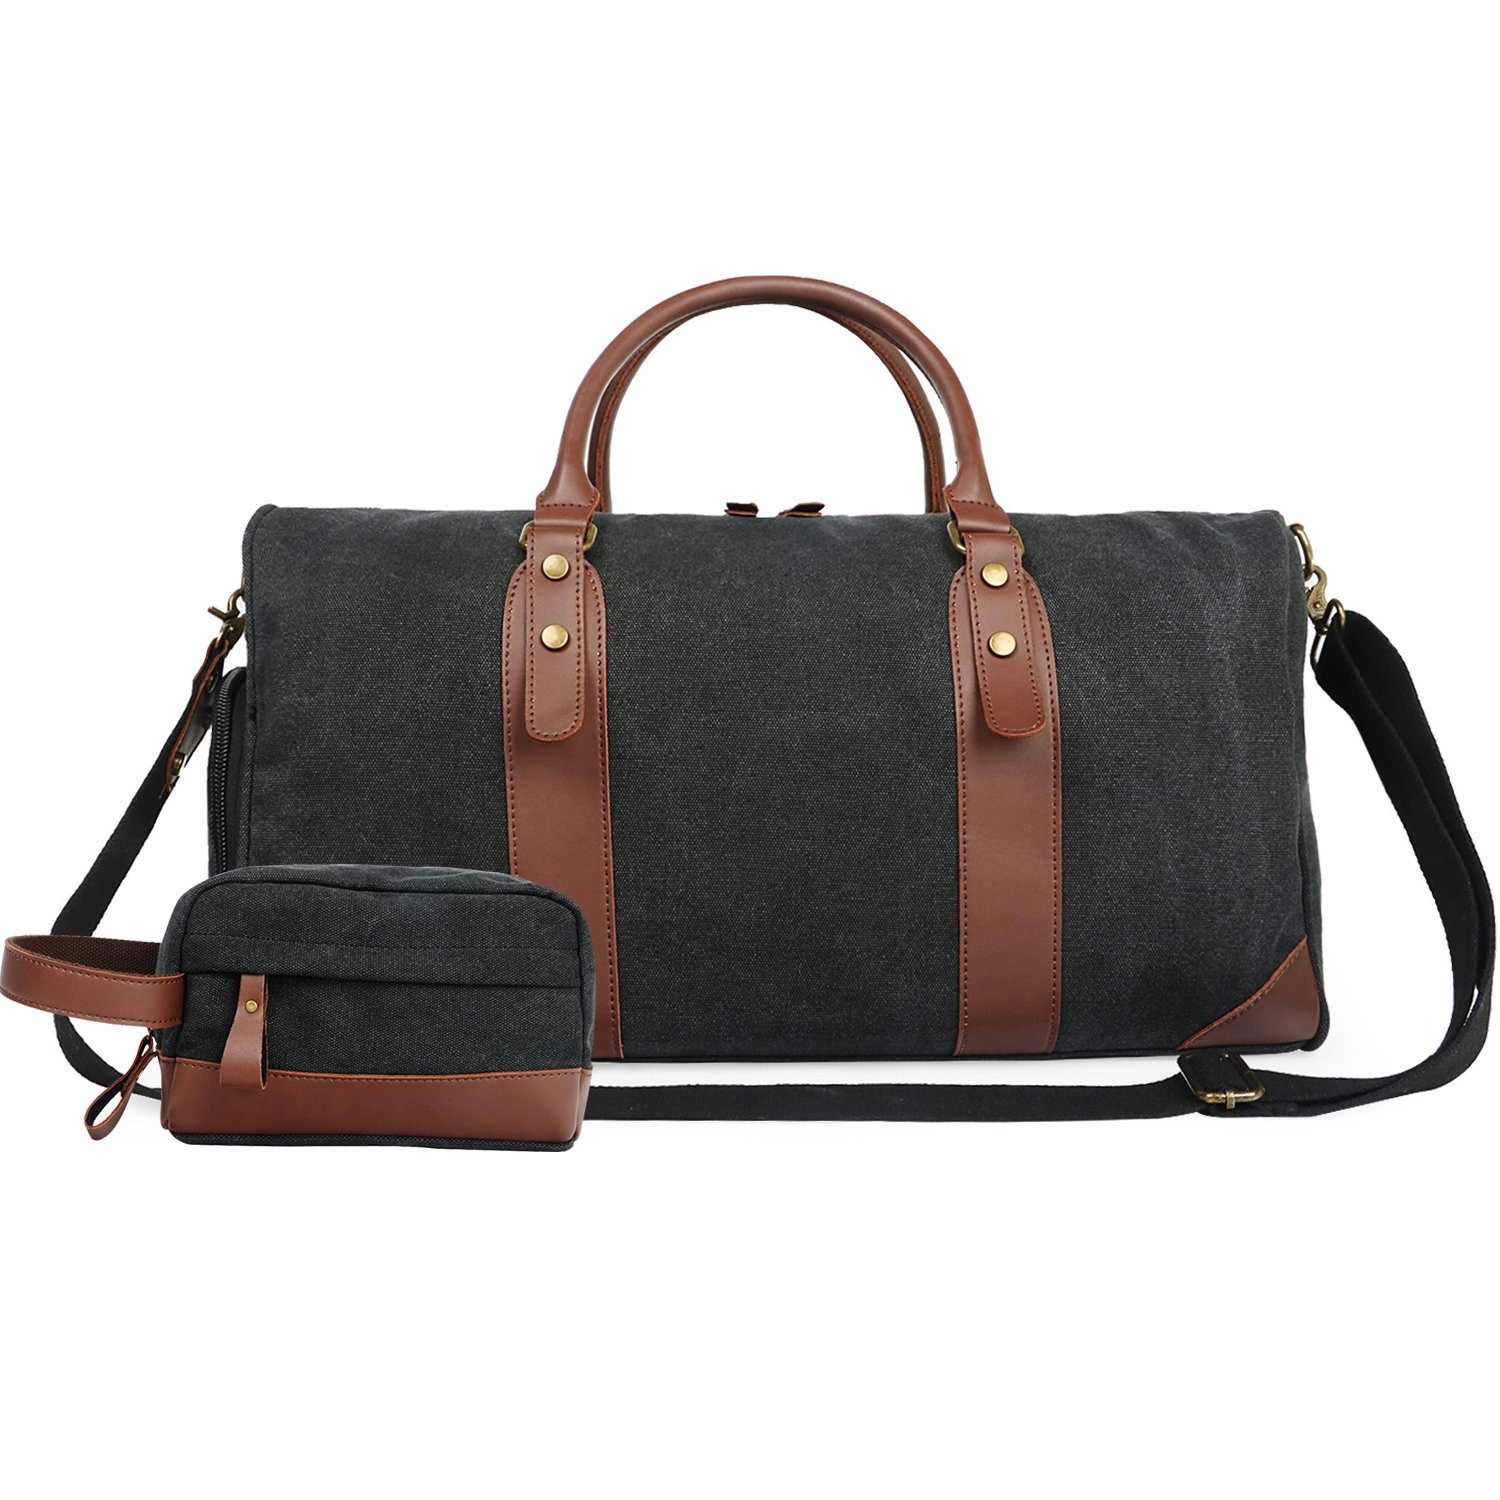 Oflamn 21'' Large Duffle Bag Canvas Leather Weekender Overnight Travel Carry On Bag - Free Toiletries Bag (Black)